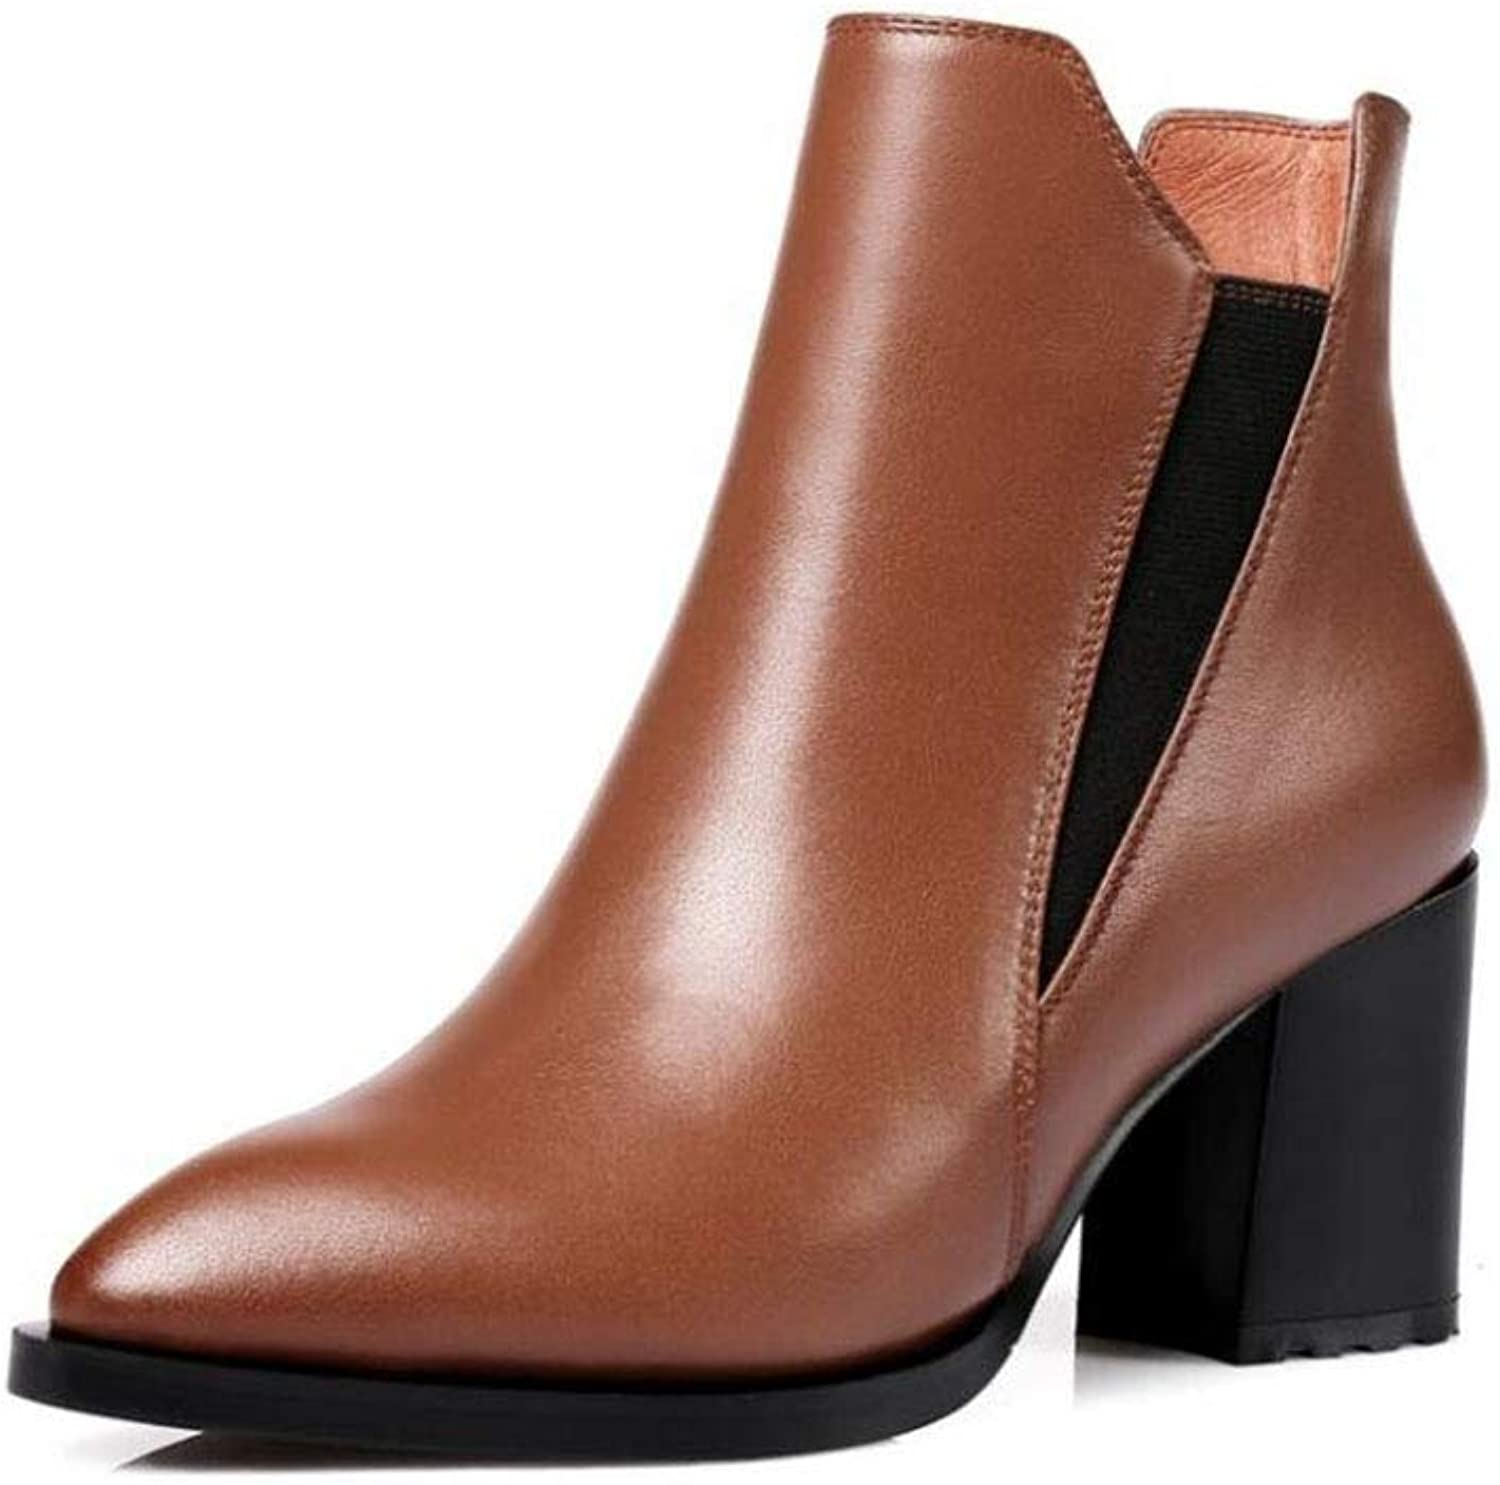 Women's Booties, Fall Winter Leather Boots, Woman Zipper Martin Boots Short Ankle Booties Pointed Toe Simple High Heels shoes (color   Brown, Size   39)